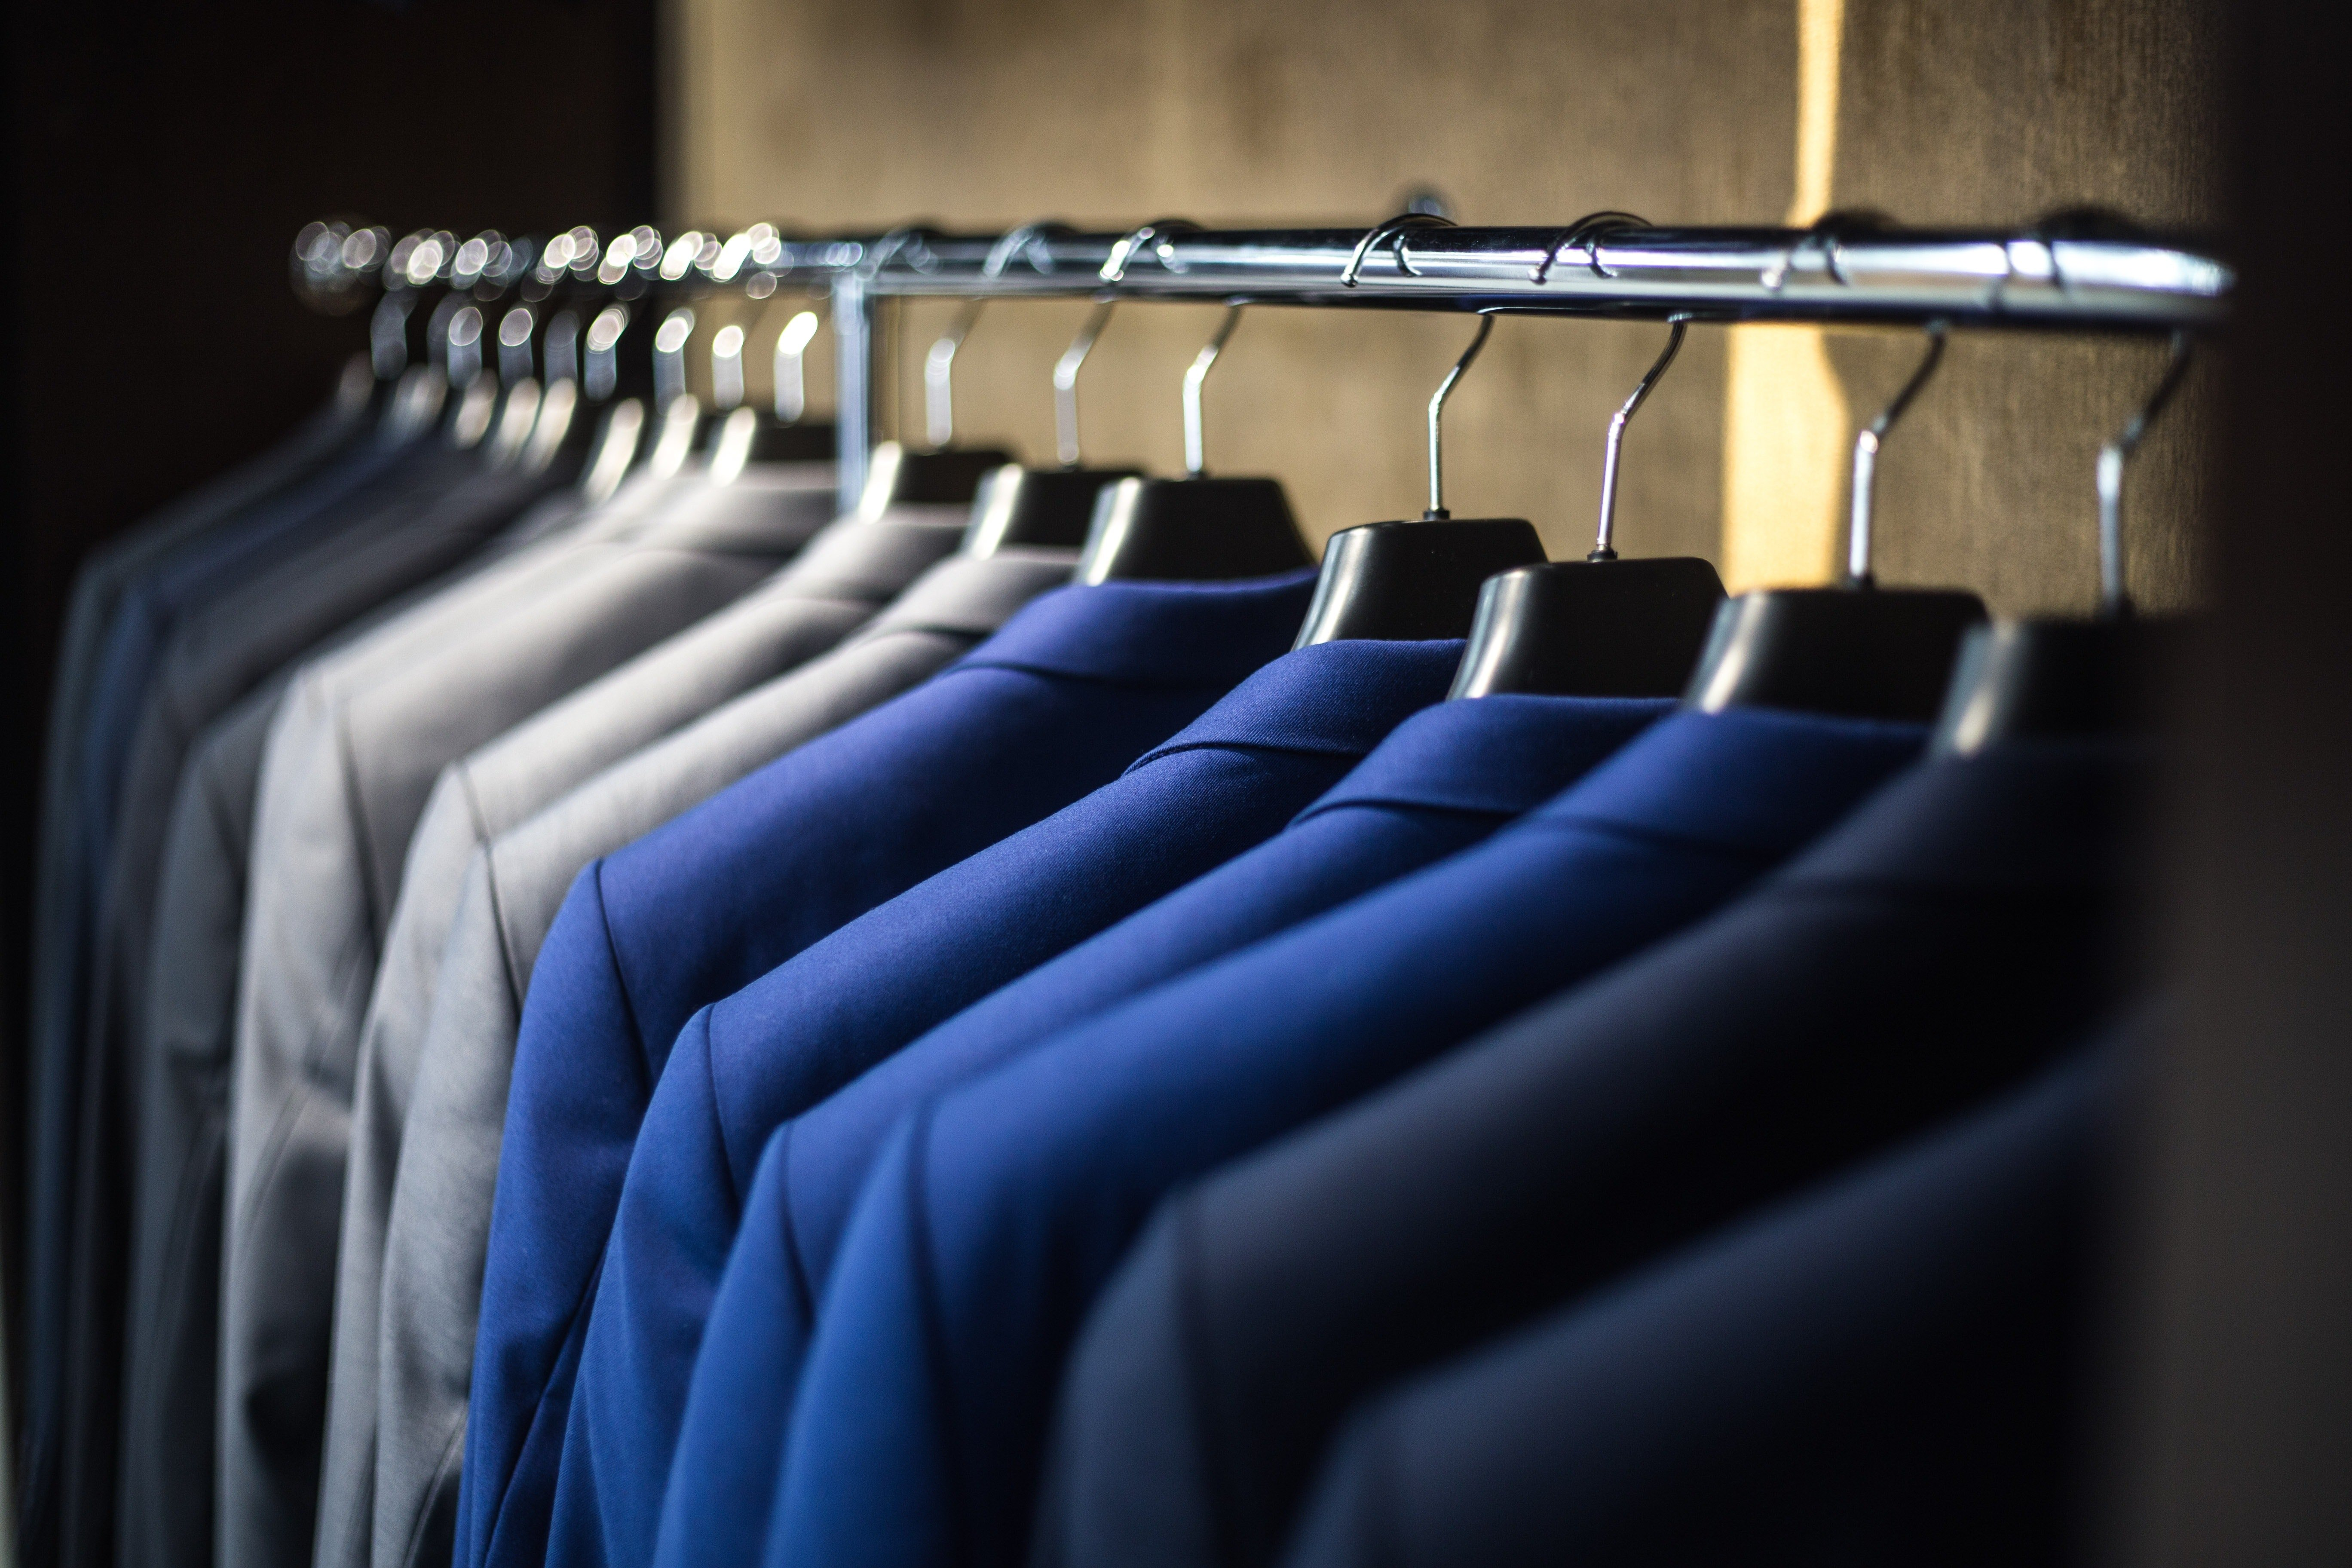 Pictured - A close-up of a row of suits   Source: Pexels